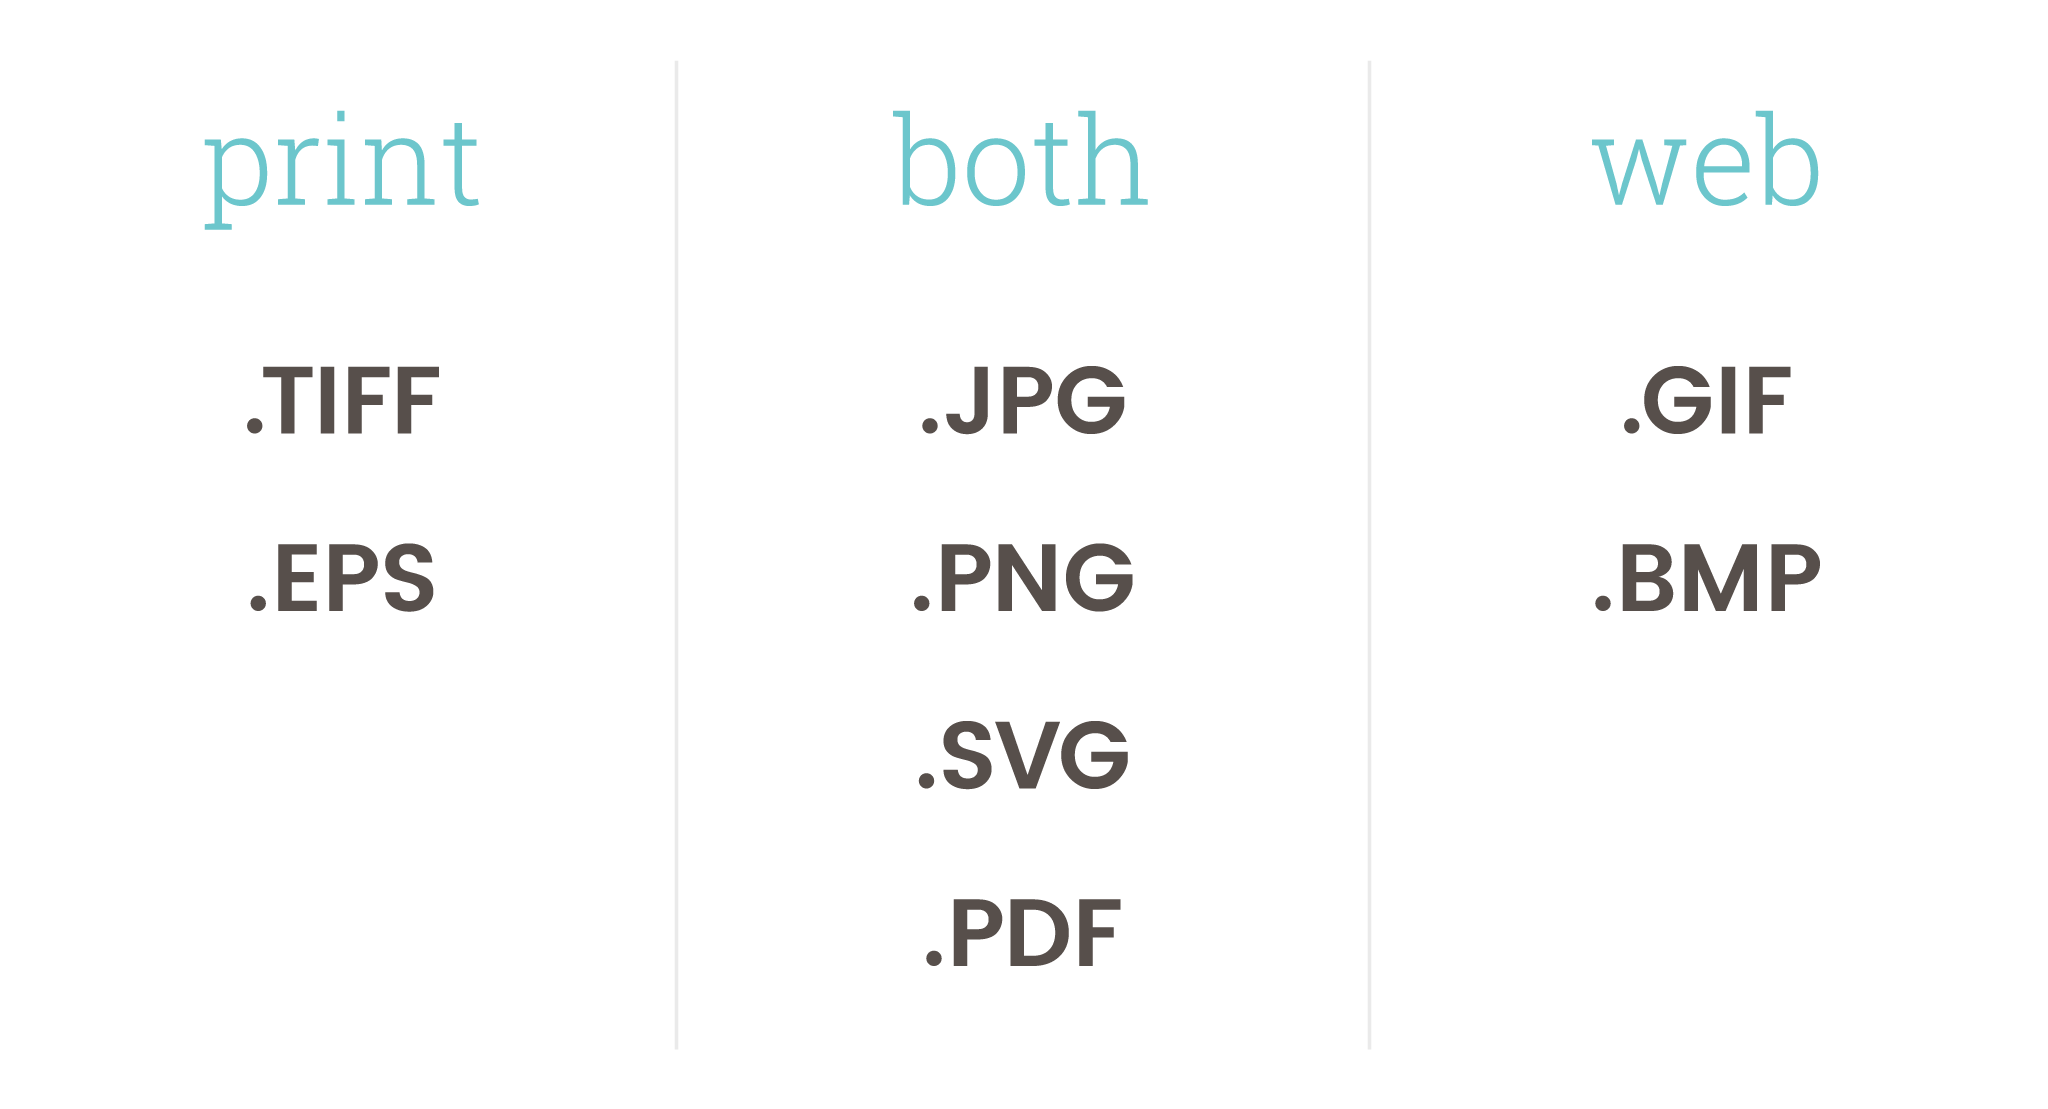 Vs web important technical. How to print png files